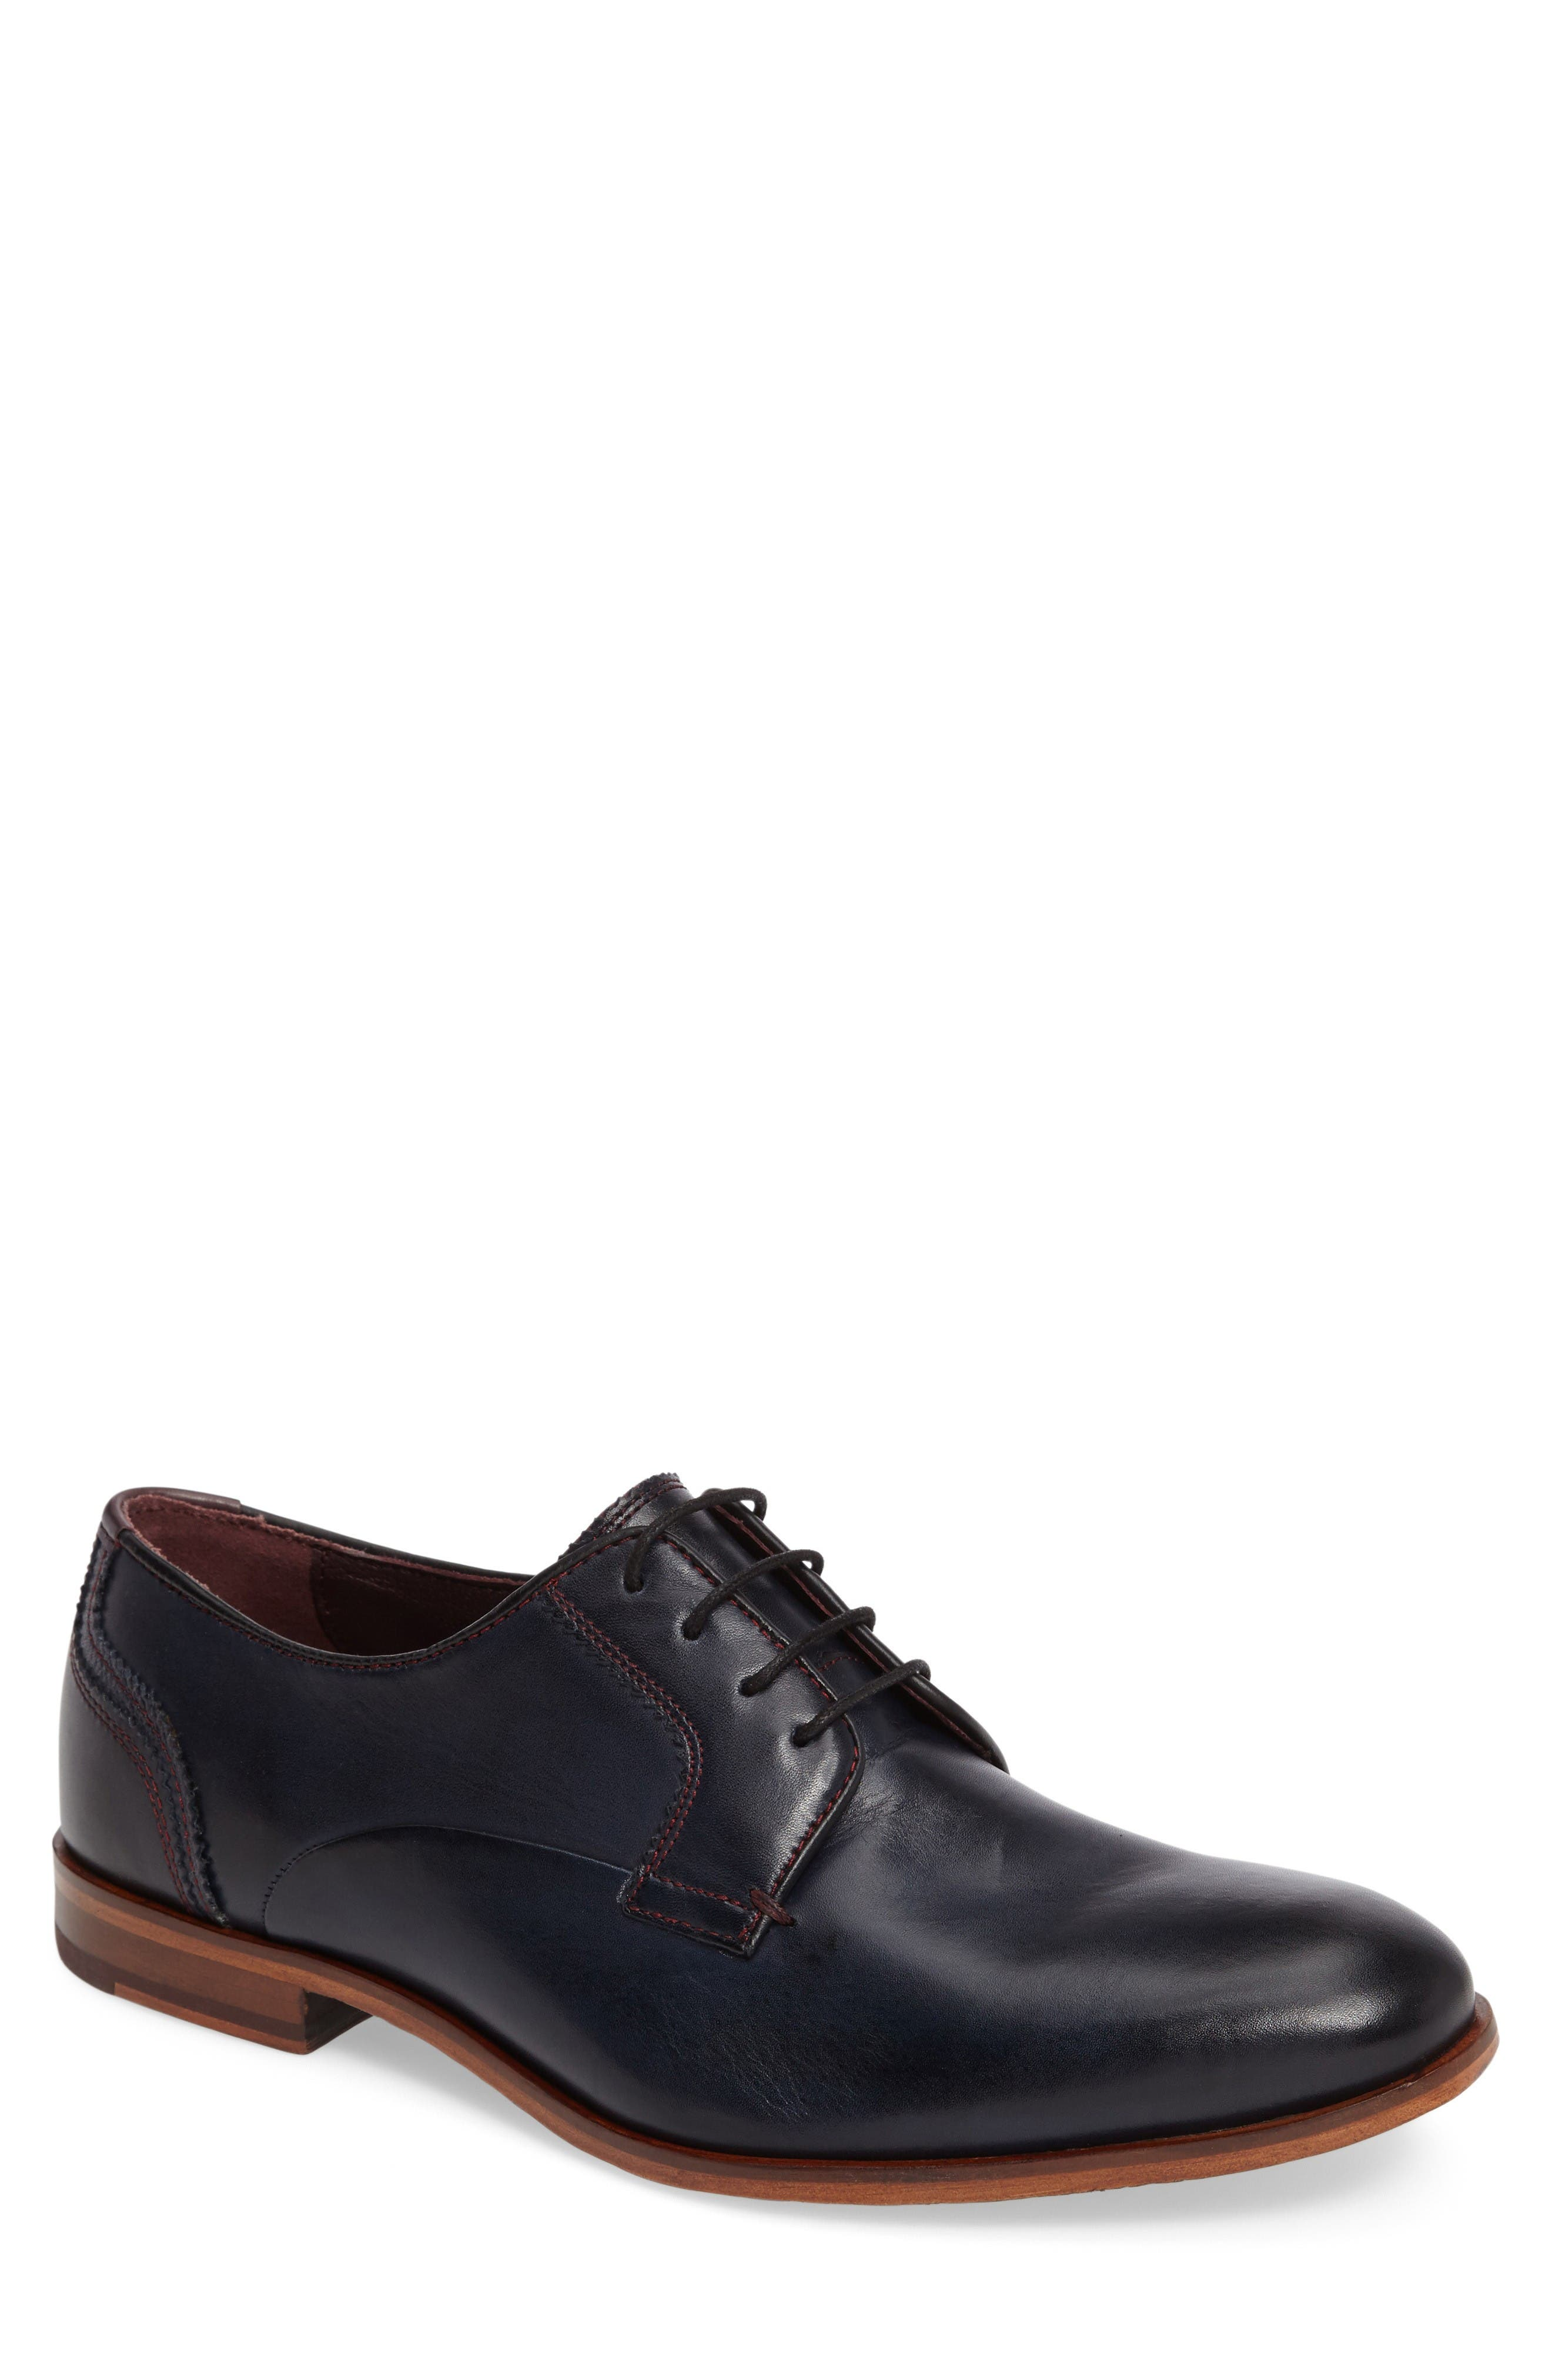 Iront Plain Toe Derby,                             Main thumbnail 1, color,                             Dark Blue Leather